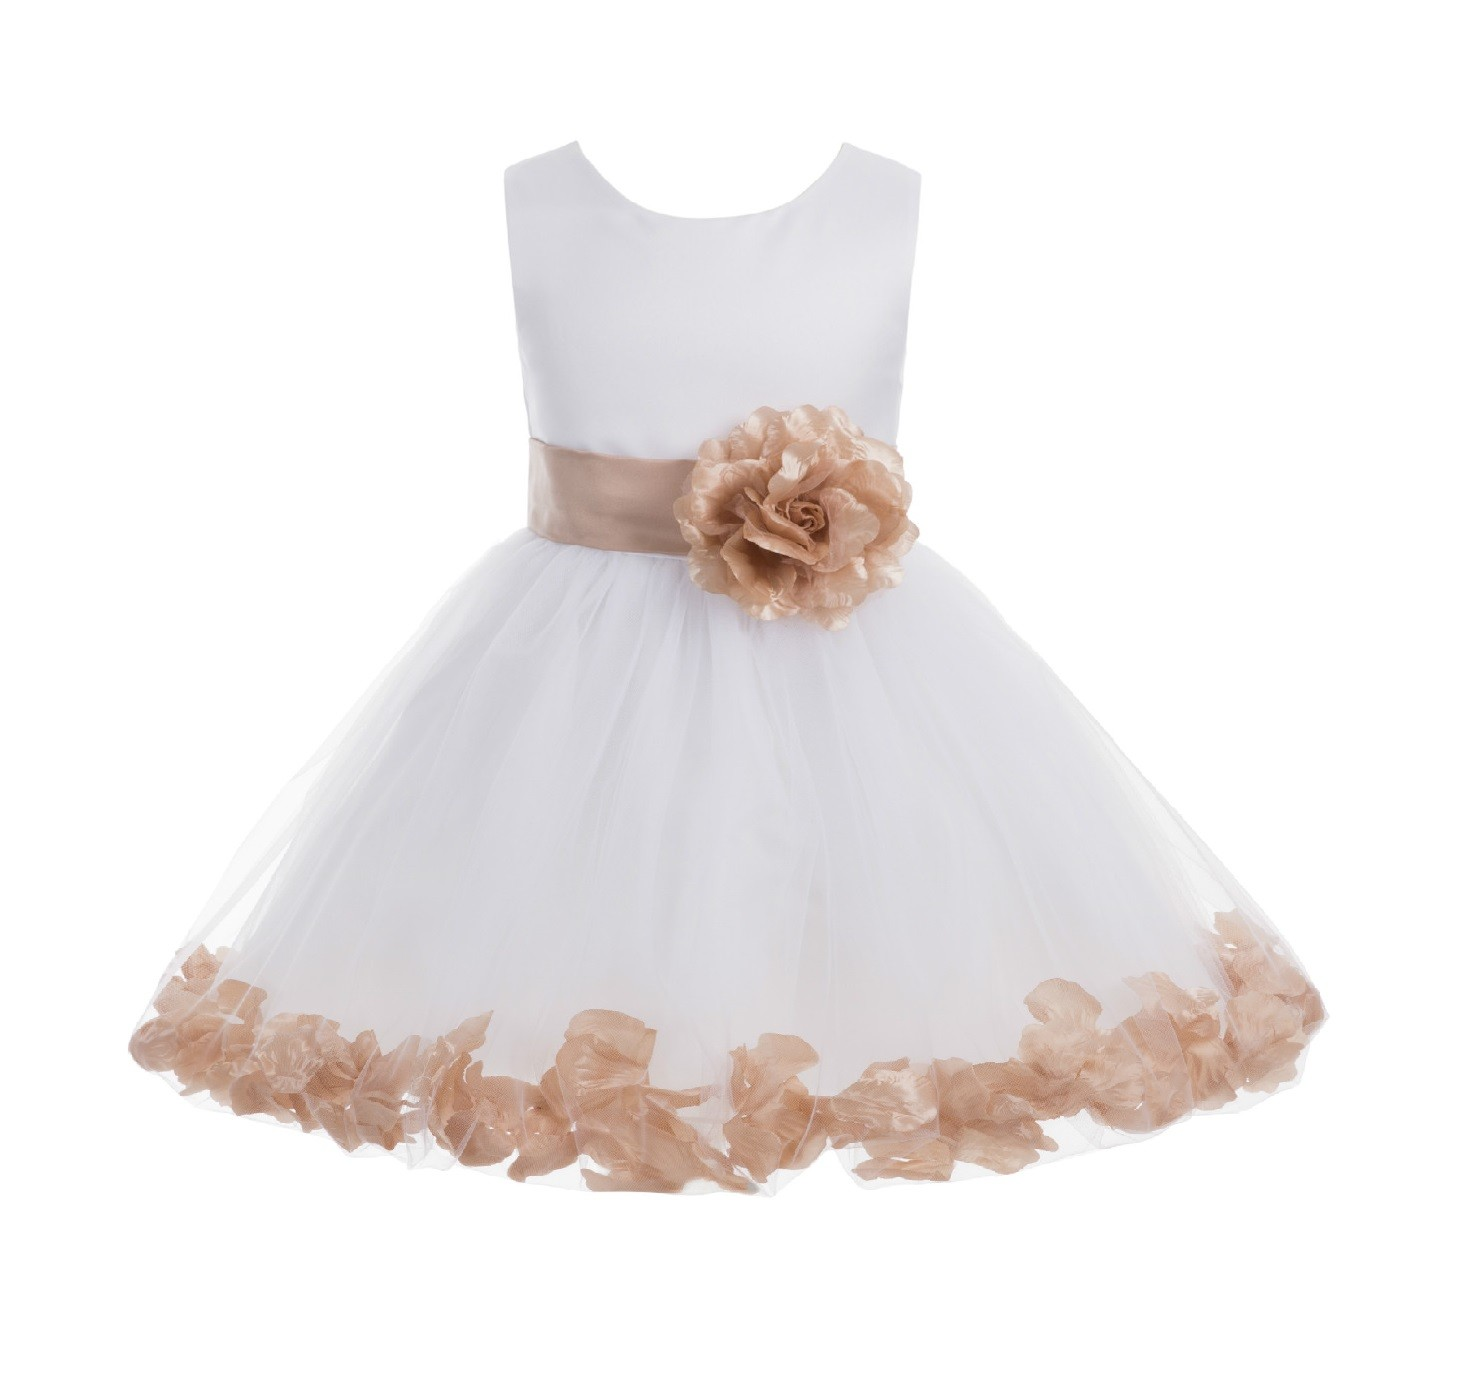 White/ Rose Gold Rose Petals Tulle Flower Girl Dress Wedding 305T